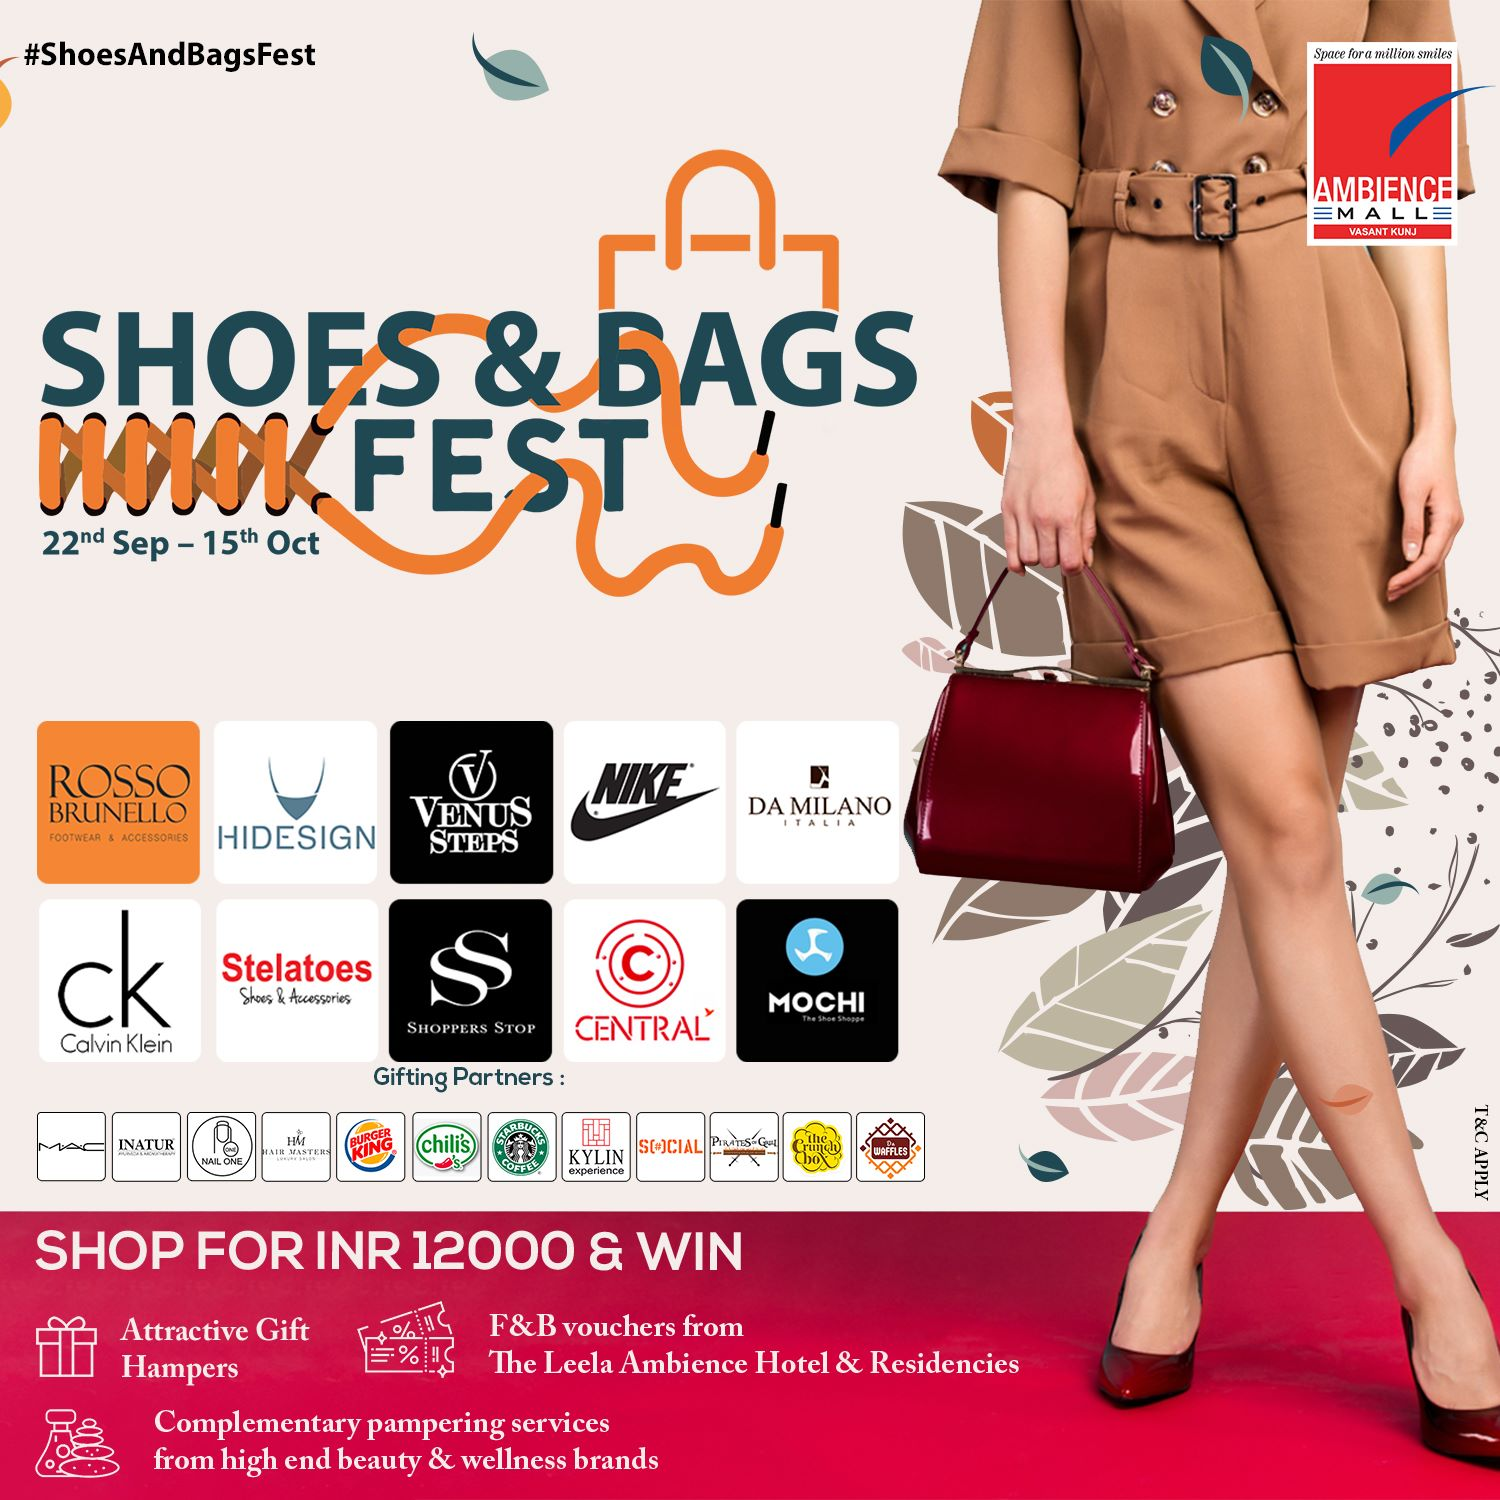 Ambience Malls - Shoes and Bags Fest